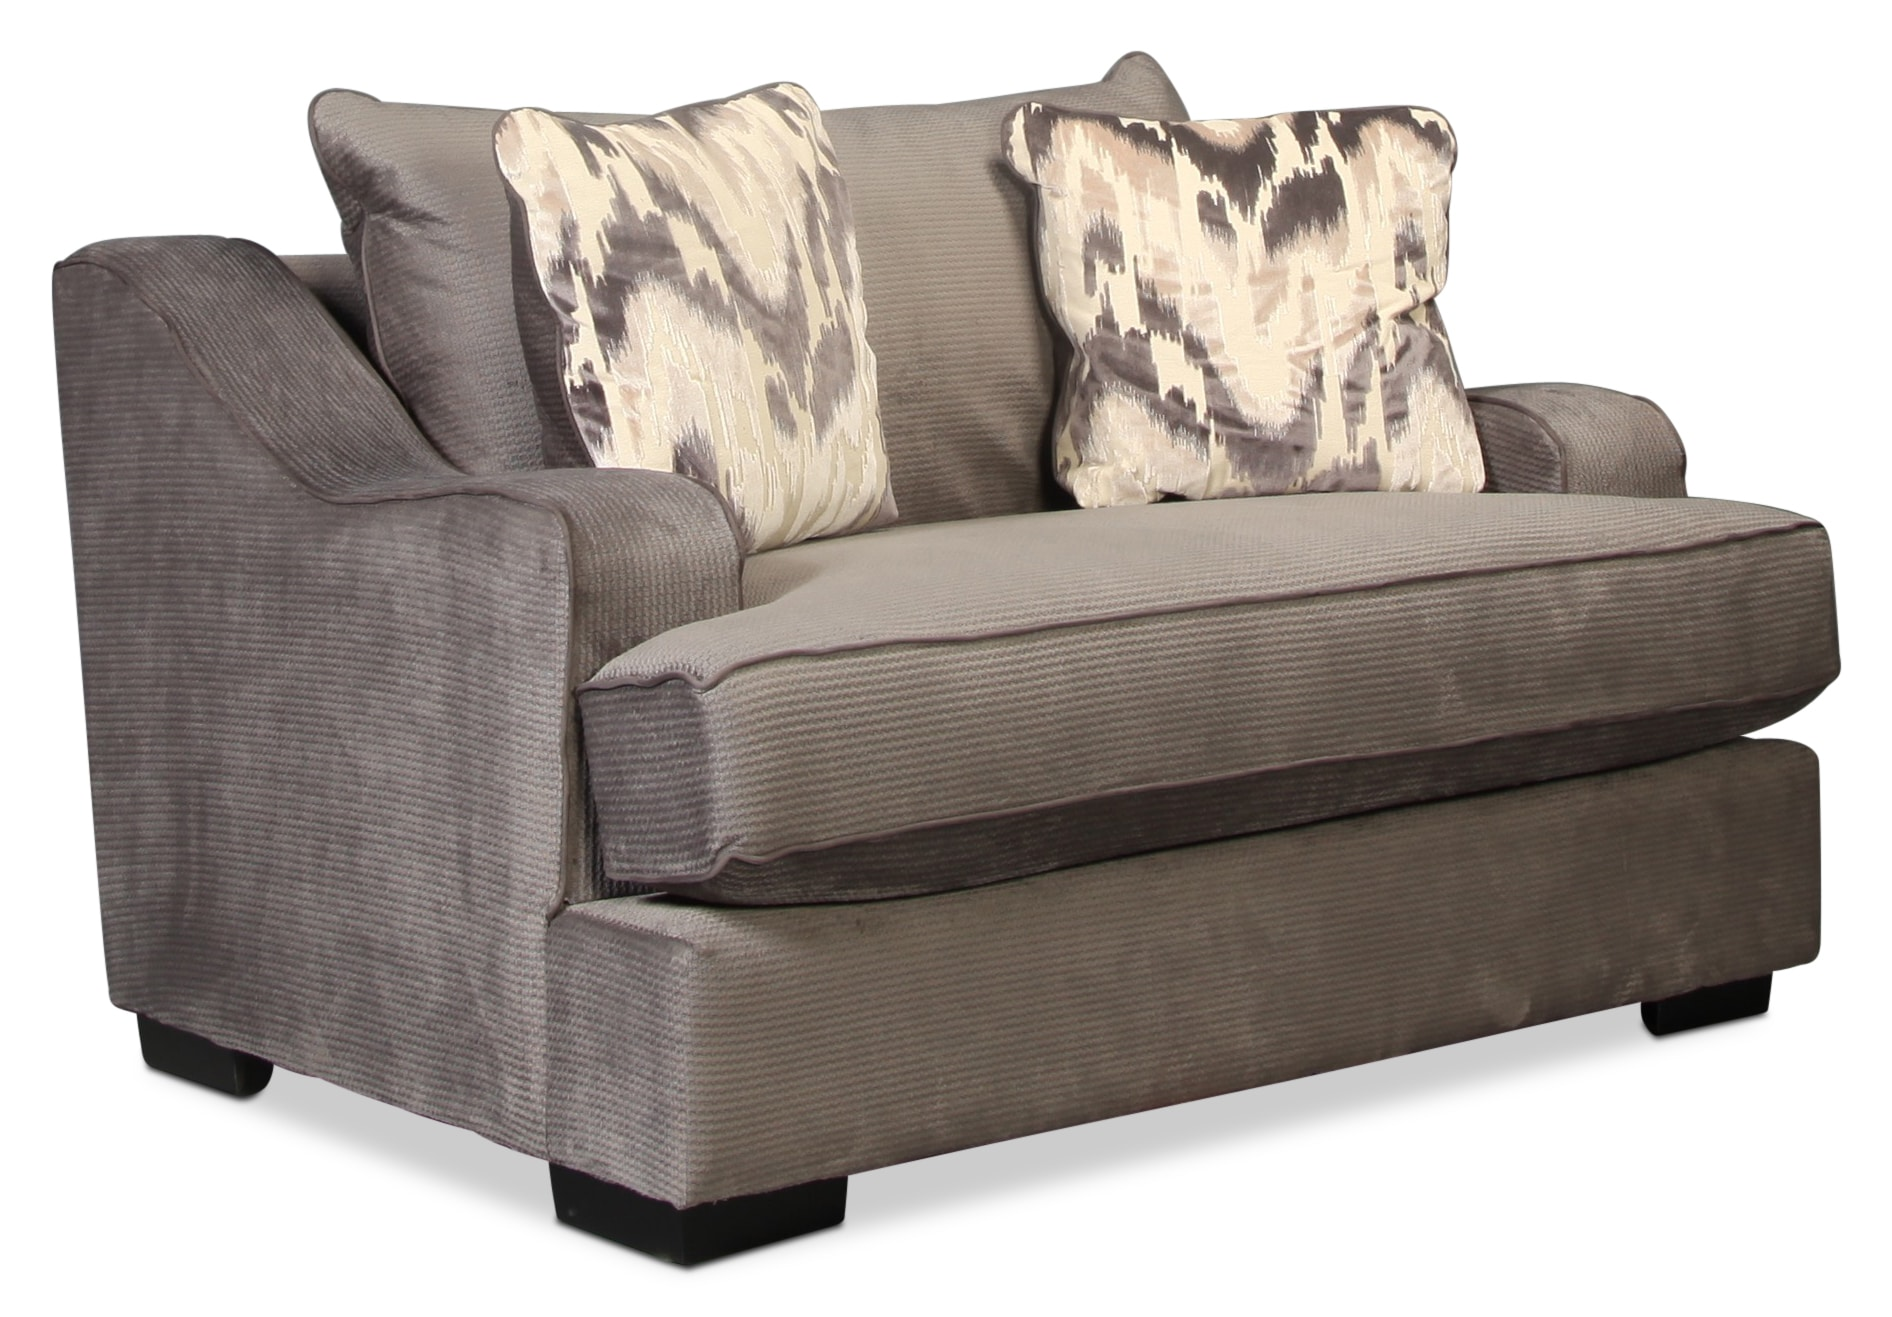 The spartan chair levin furniture for Levin furniture living room chairs